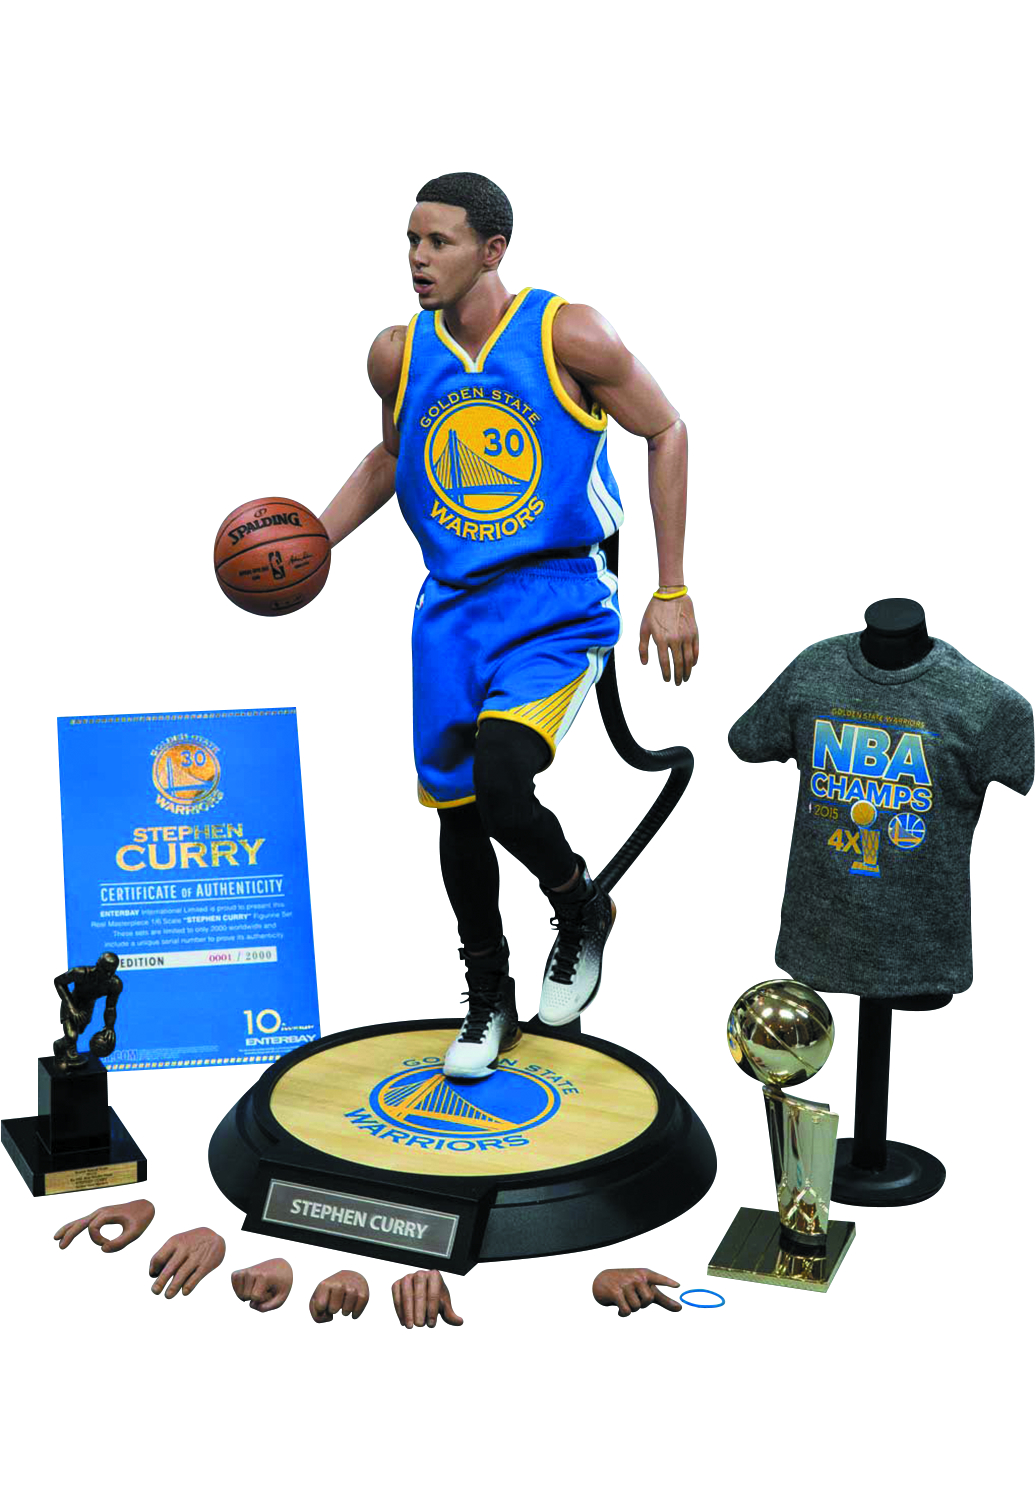 c412df5aeb5e AUG158580 - STEPHEN CURRY REAL MASTERPIECE 1 6 SCALE AF - Previews World